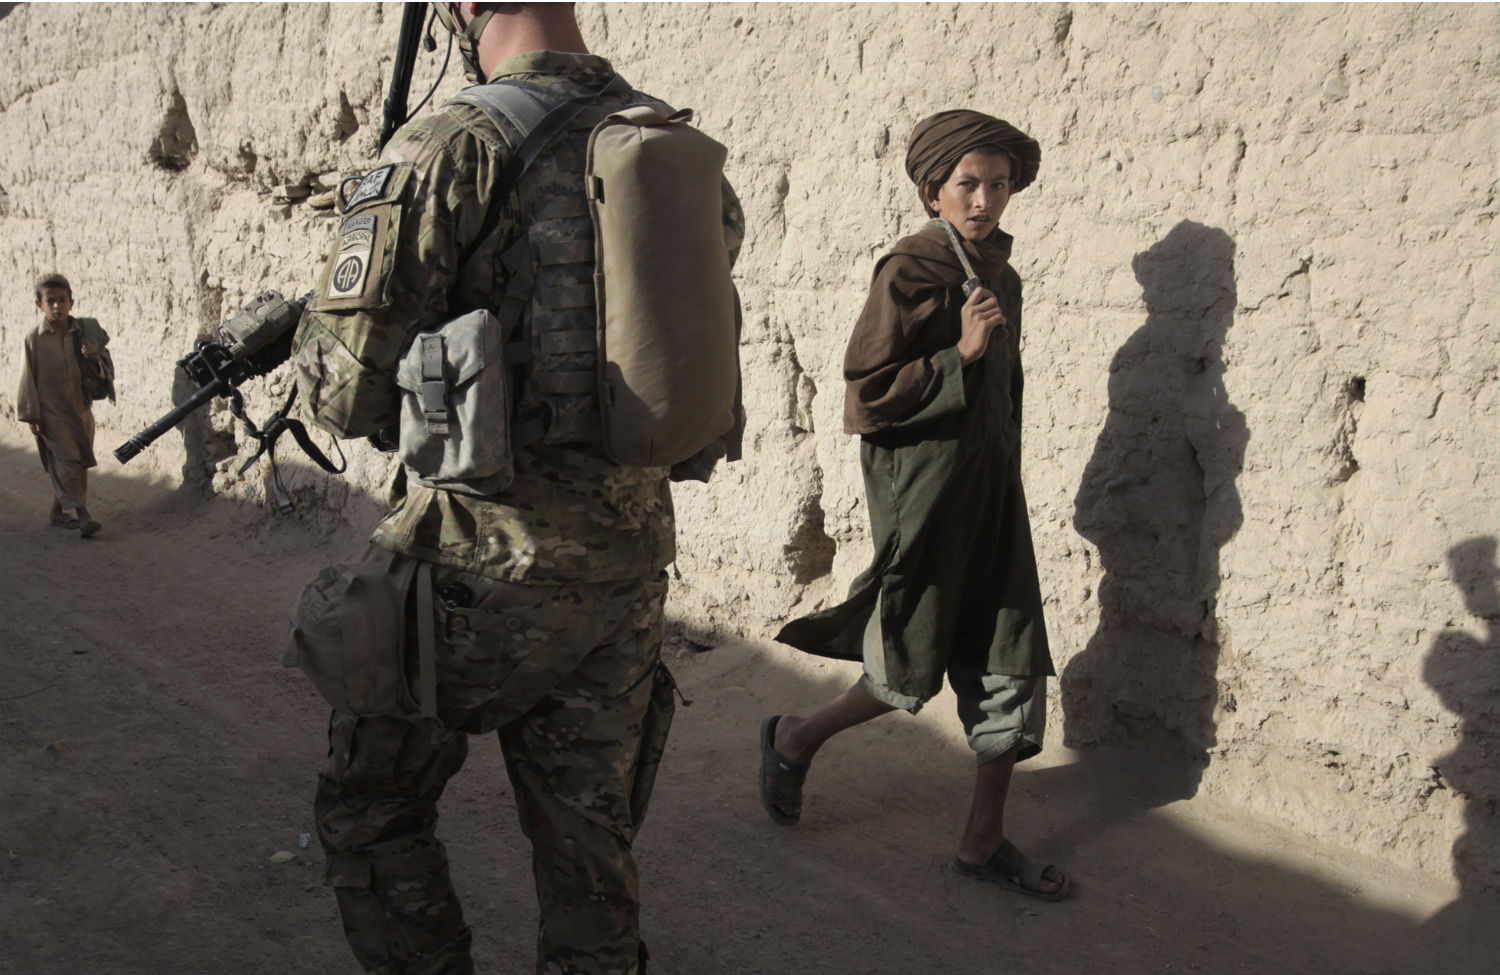 A-local-boy-looks-at-US-Army-soldiers-as-they-conduct-a-morning-patrol-through-the-village-of-Kowall-in-Arghandab-District-July-11-2010.-ReutersBob-Strong